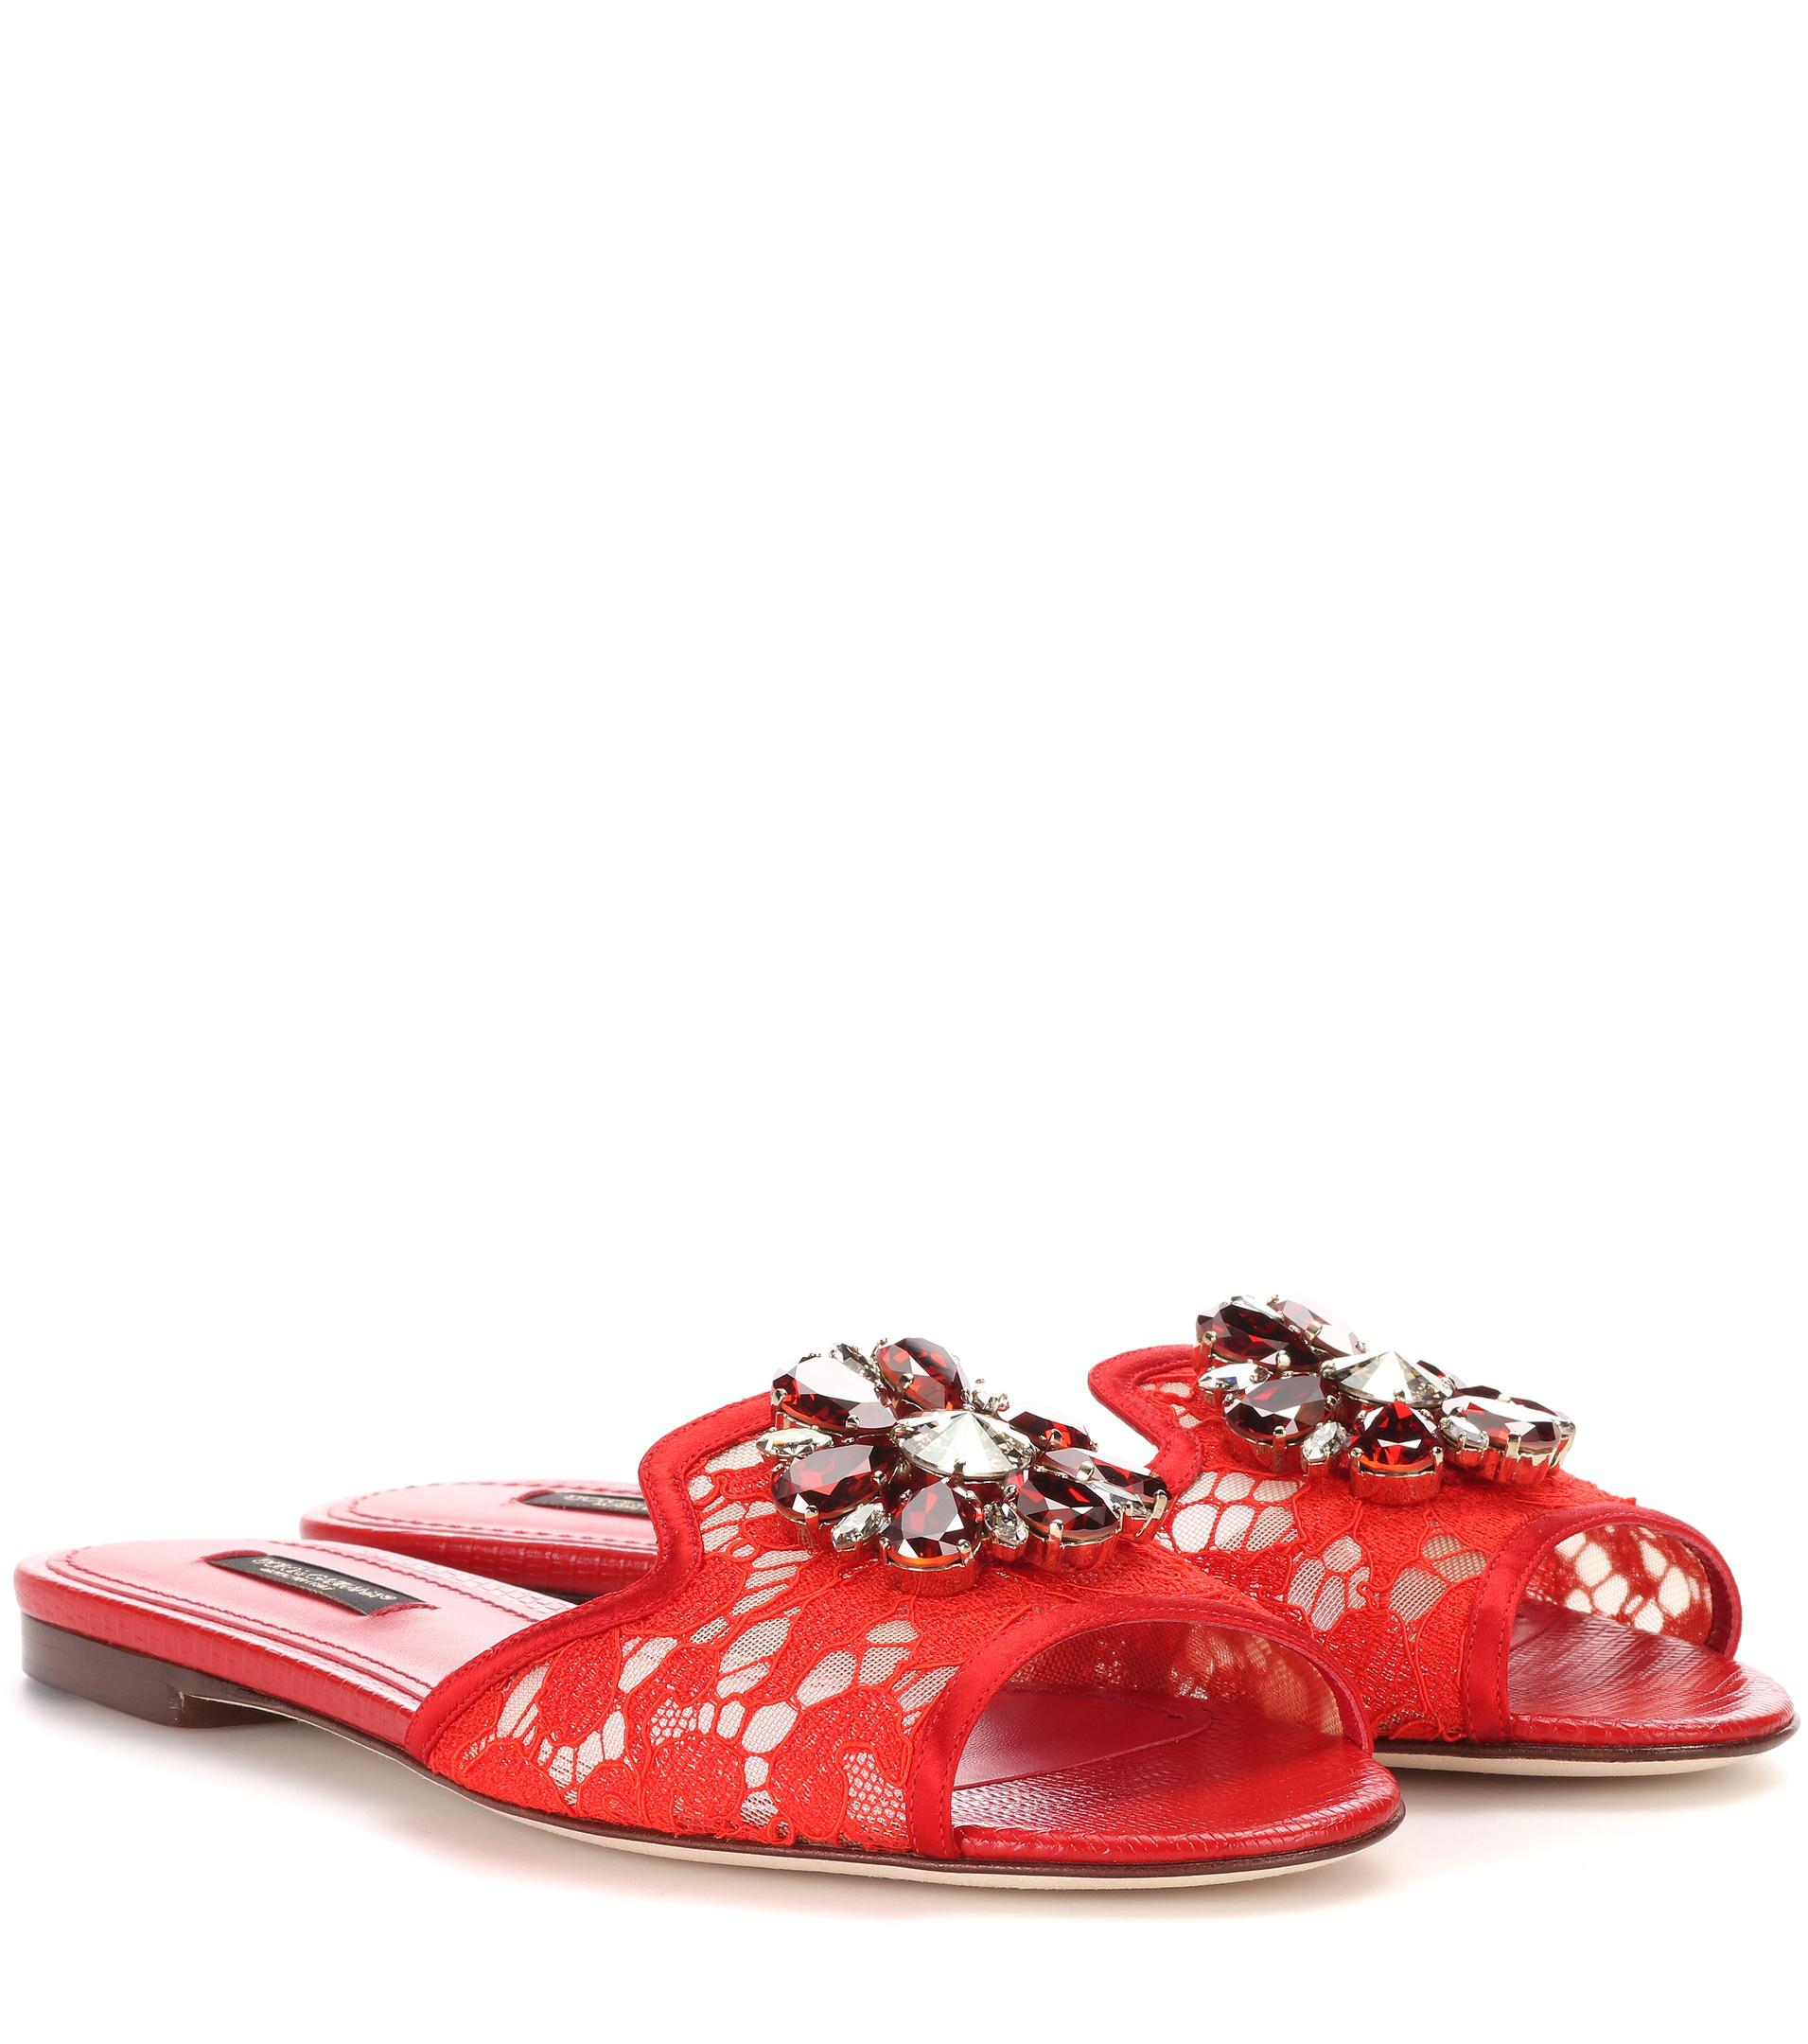 Dolce & Gabbana Bianca Embellished Slide Sandals 2014 new online sale affordable oly3Y4XO2a